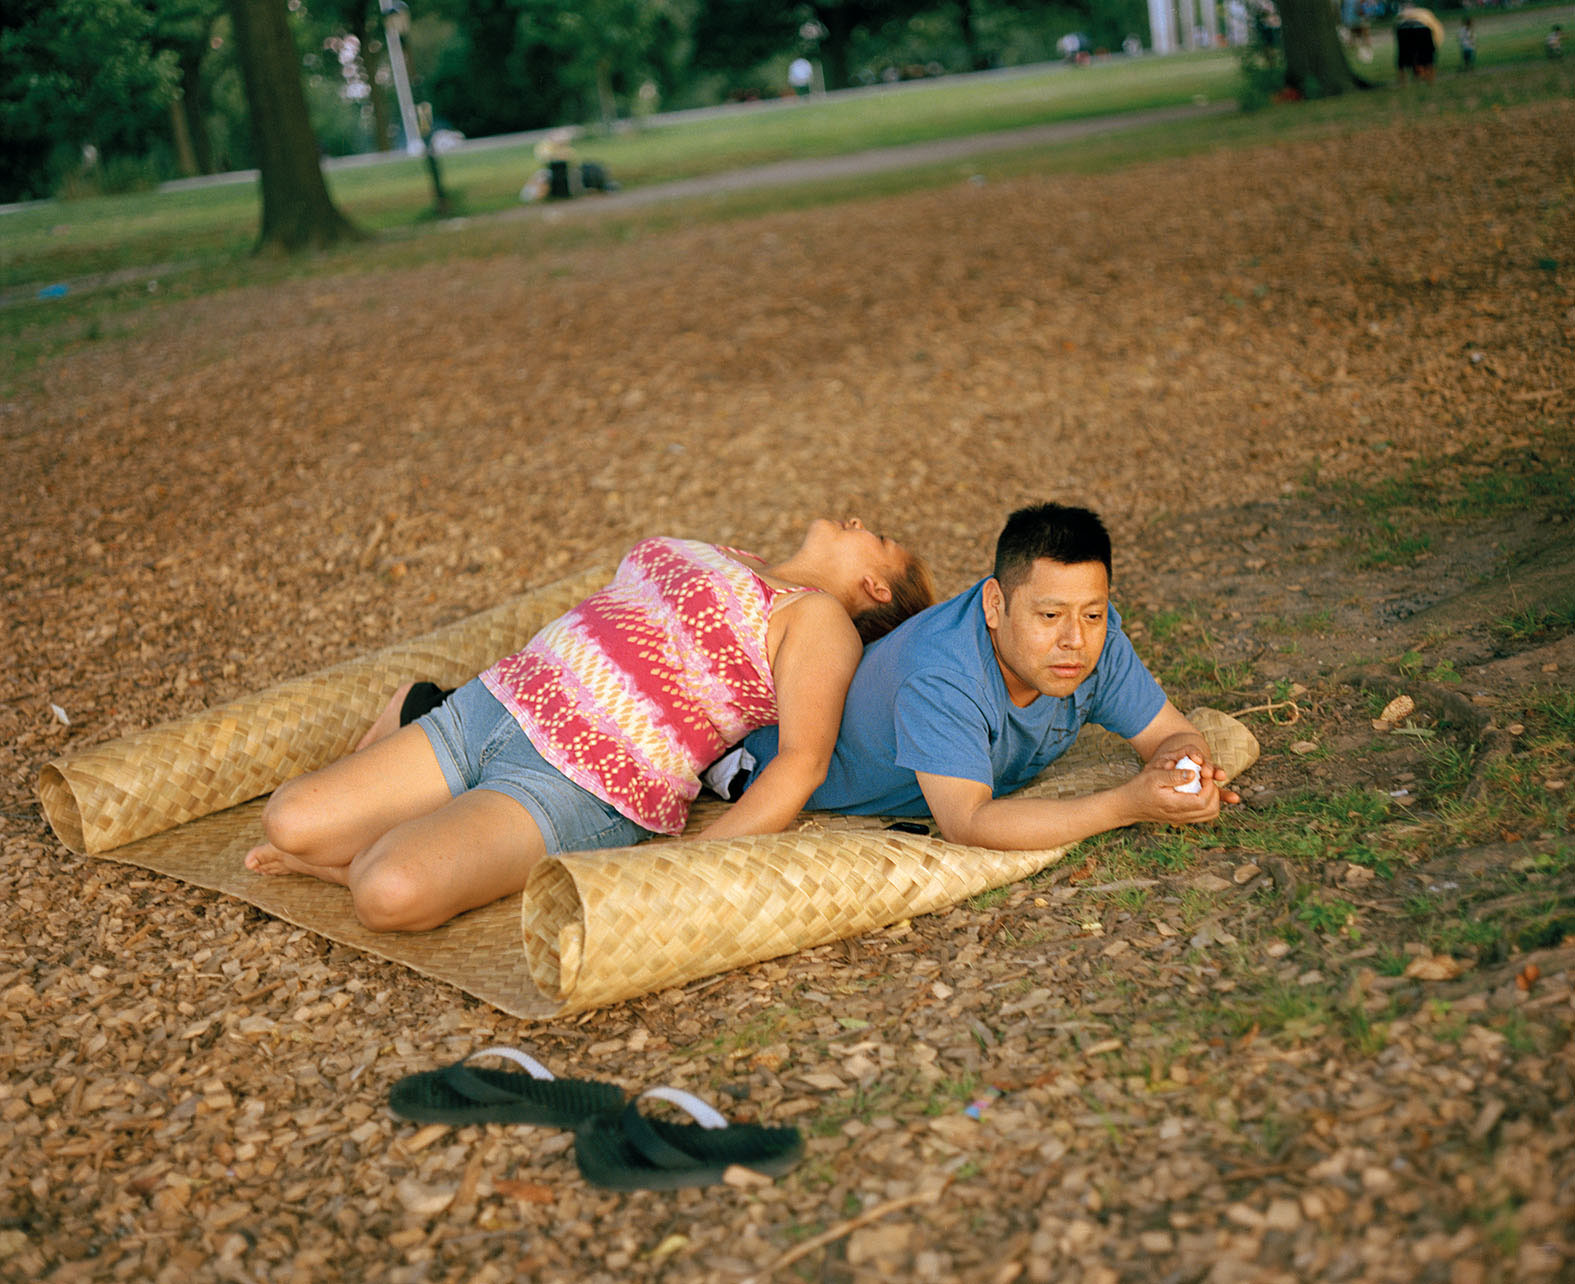 A woman leans against a man on a mat, lying down in the park